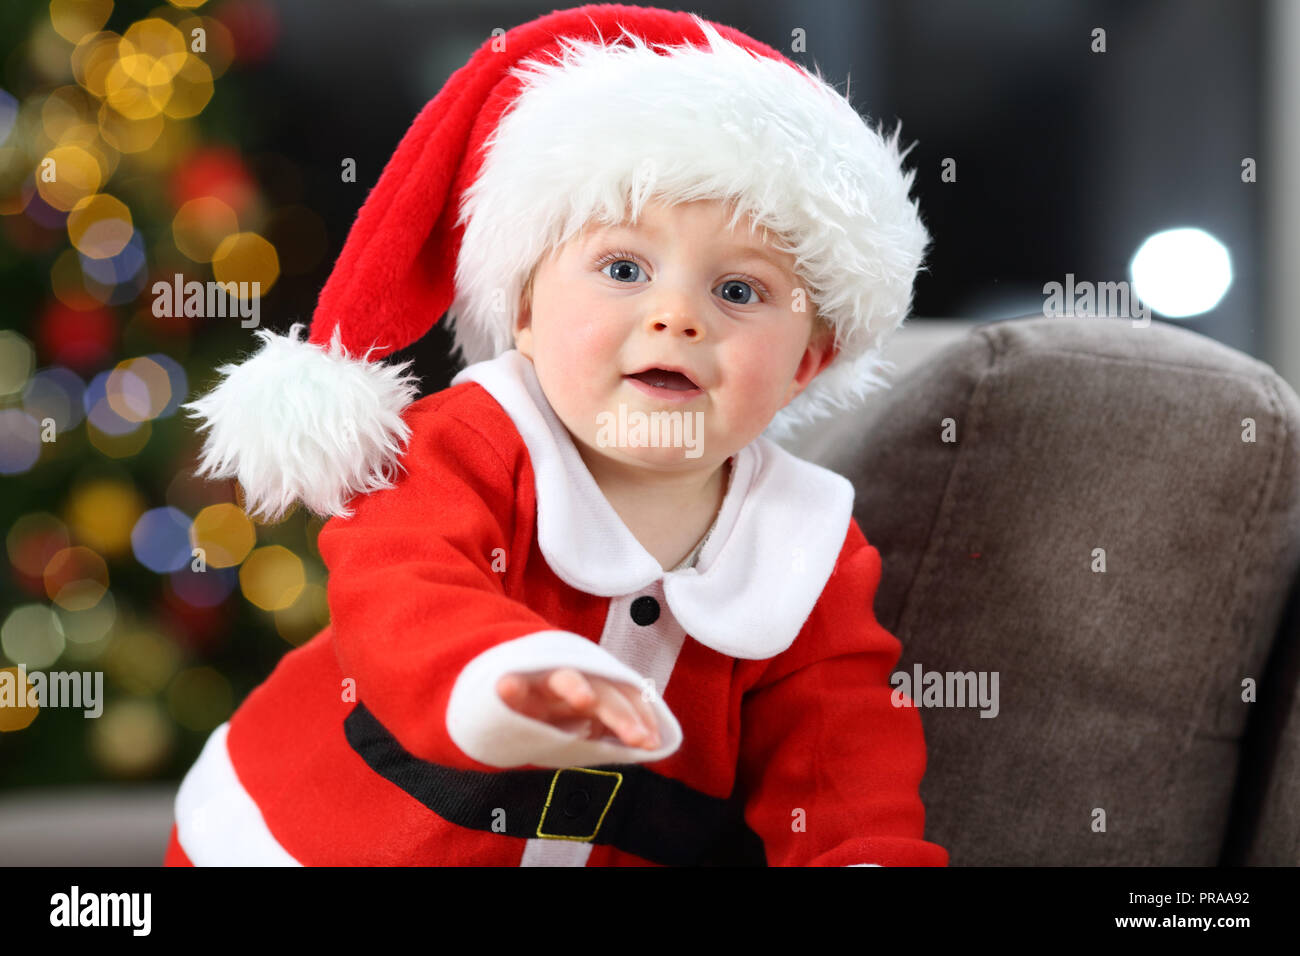 062401bb2 Cute baby wearing santa claus costume on a couch at home in christmas